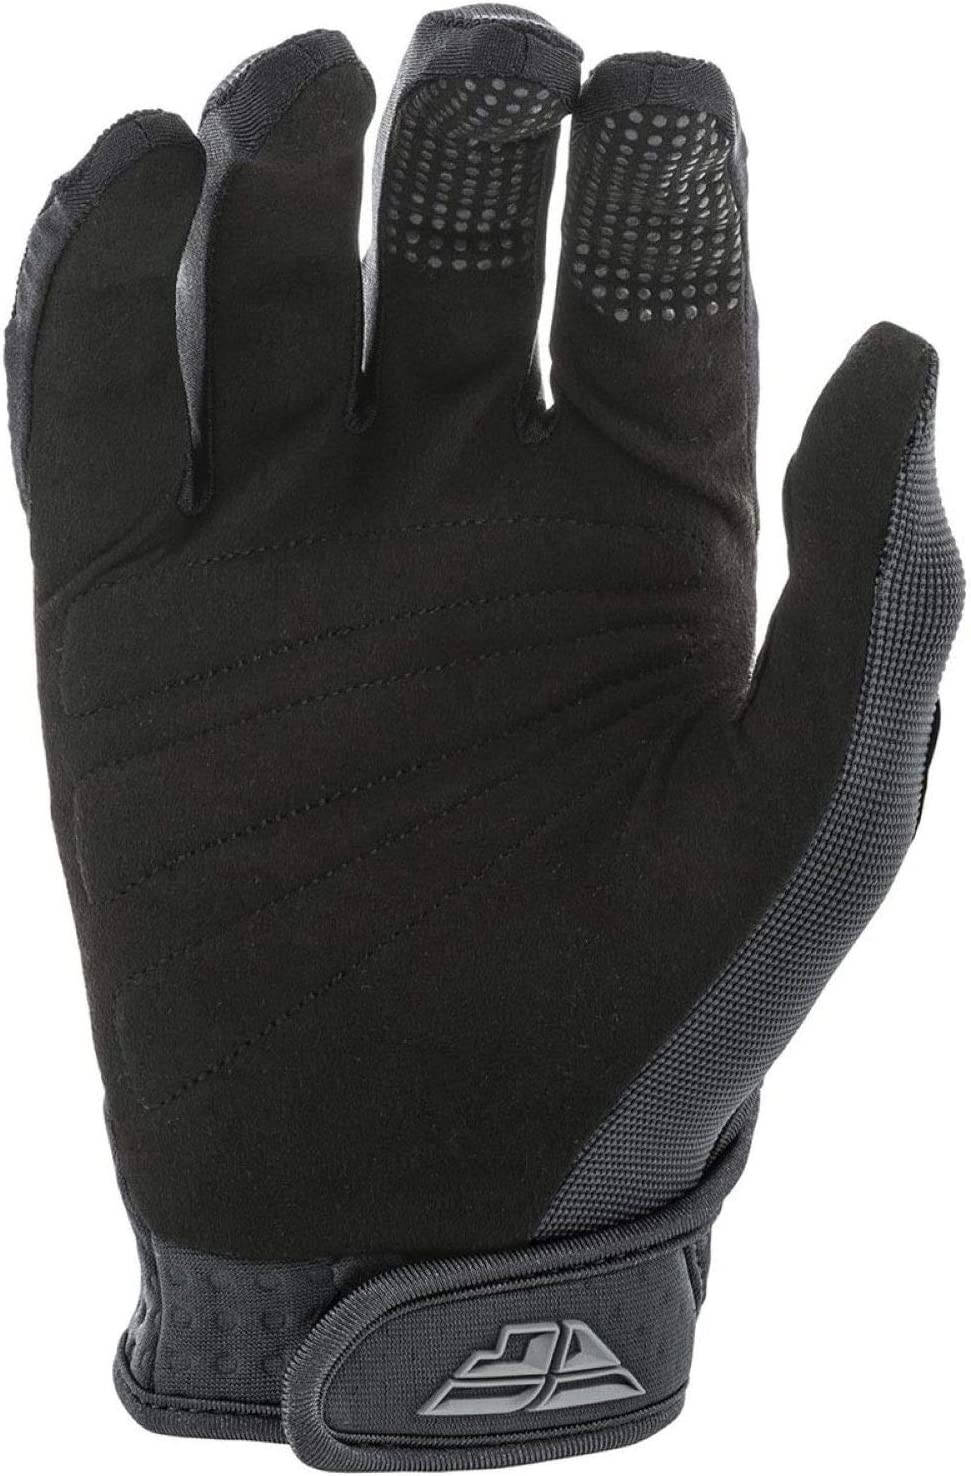 X-Large Black//Grey Fly Racing 2020 F-16 Gloves